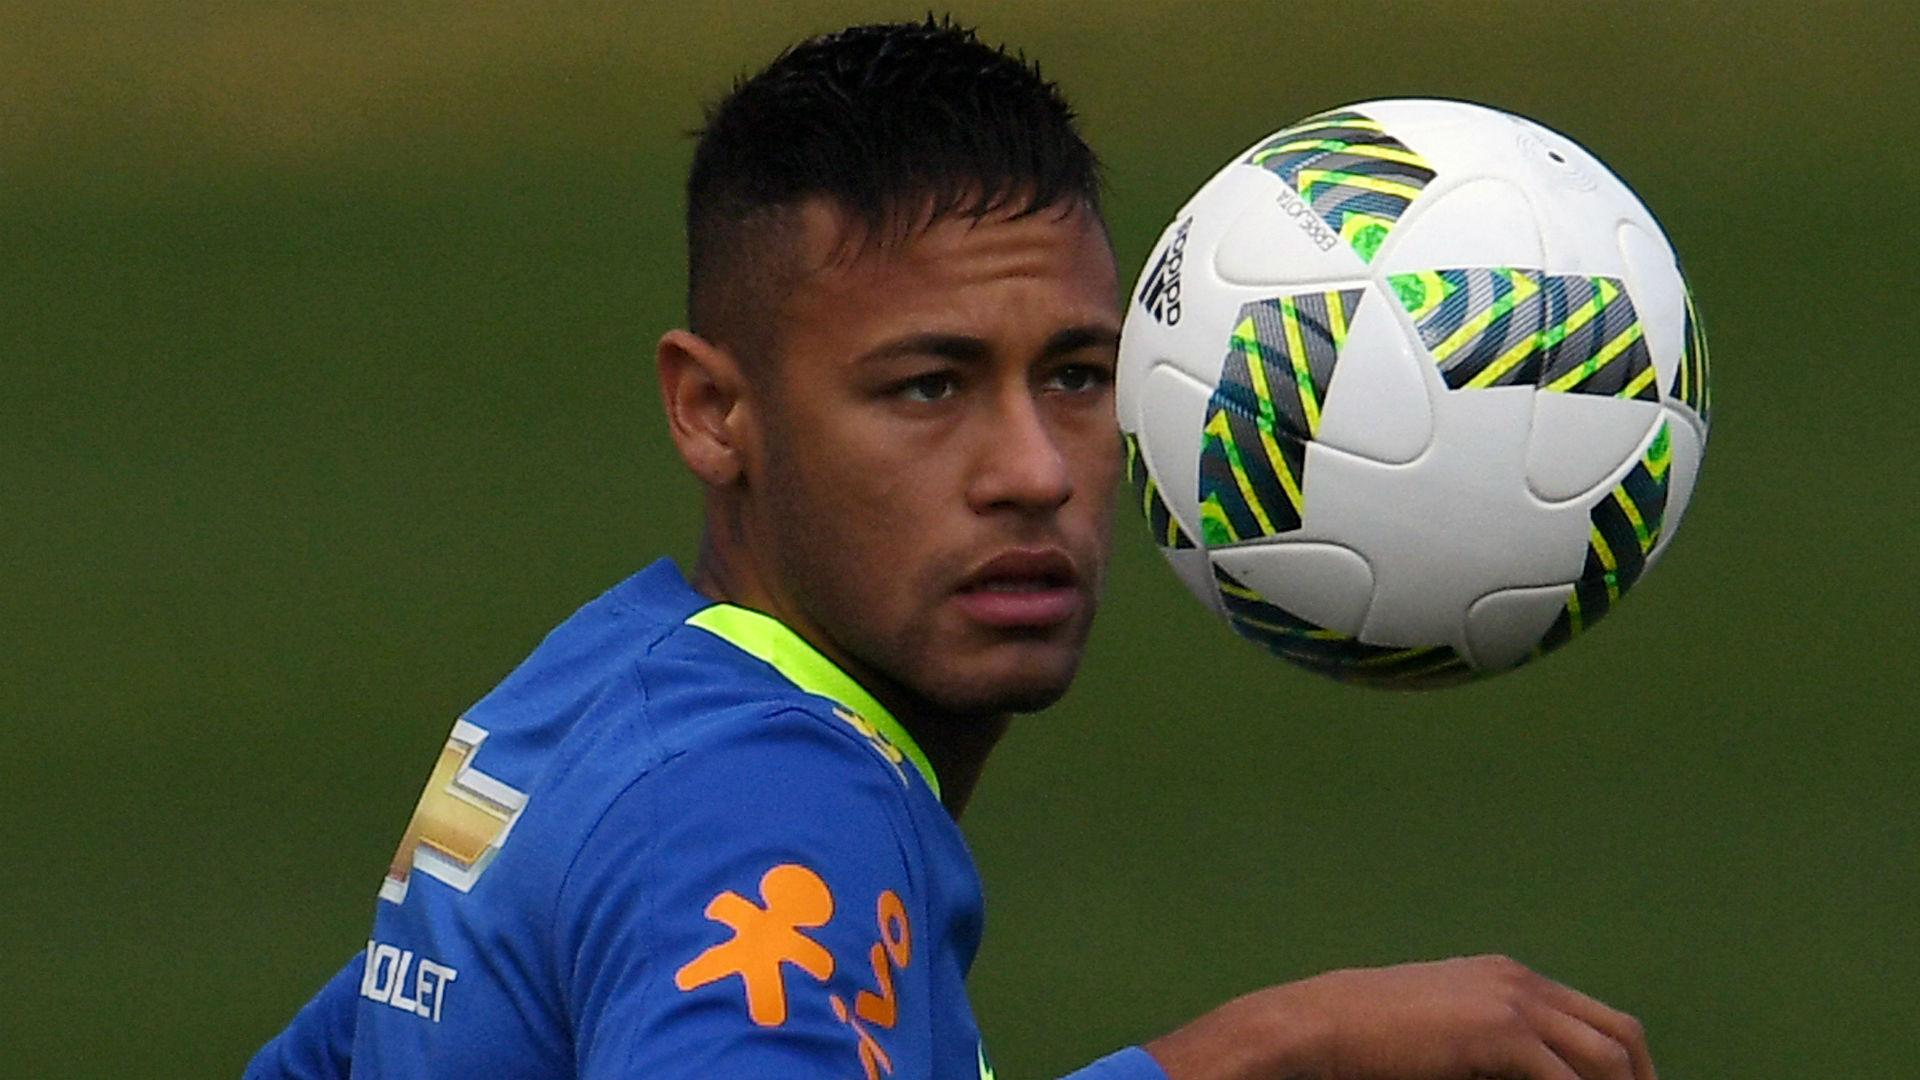 Neymar: I play for Messi, he's the man